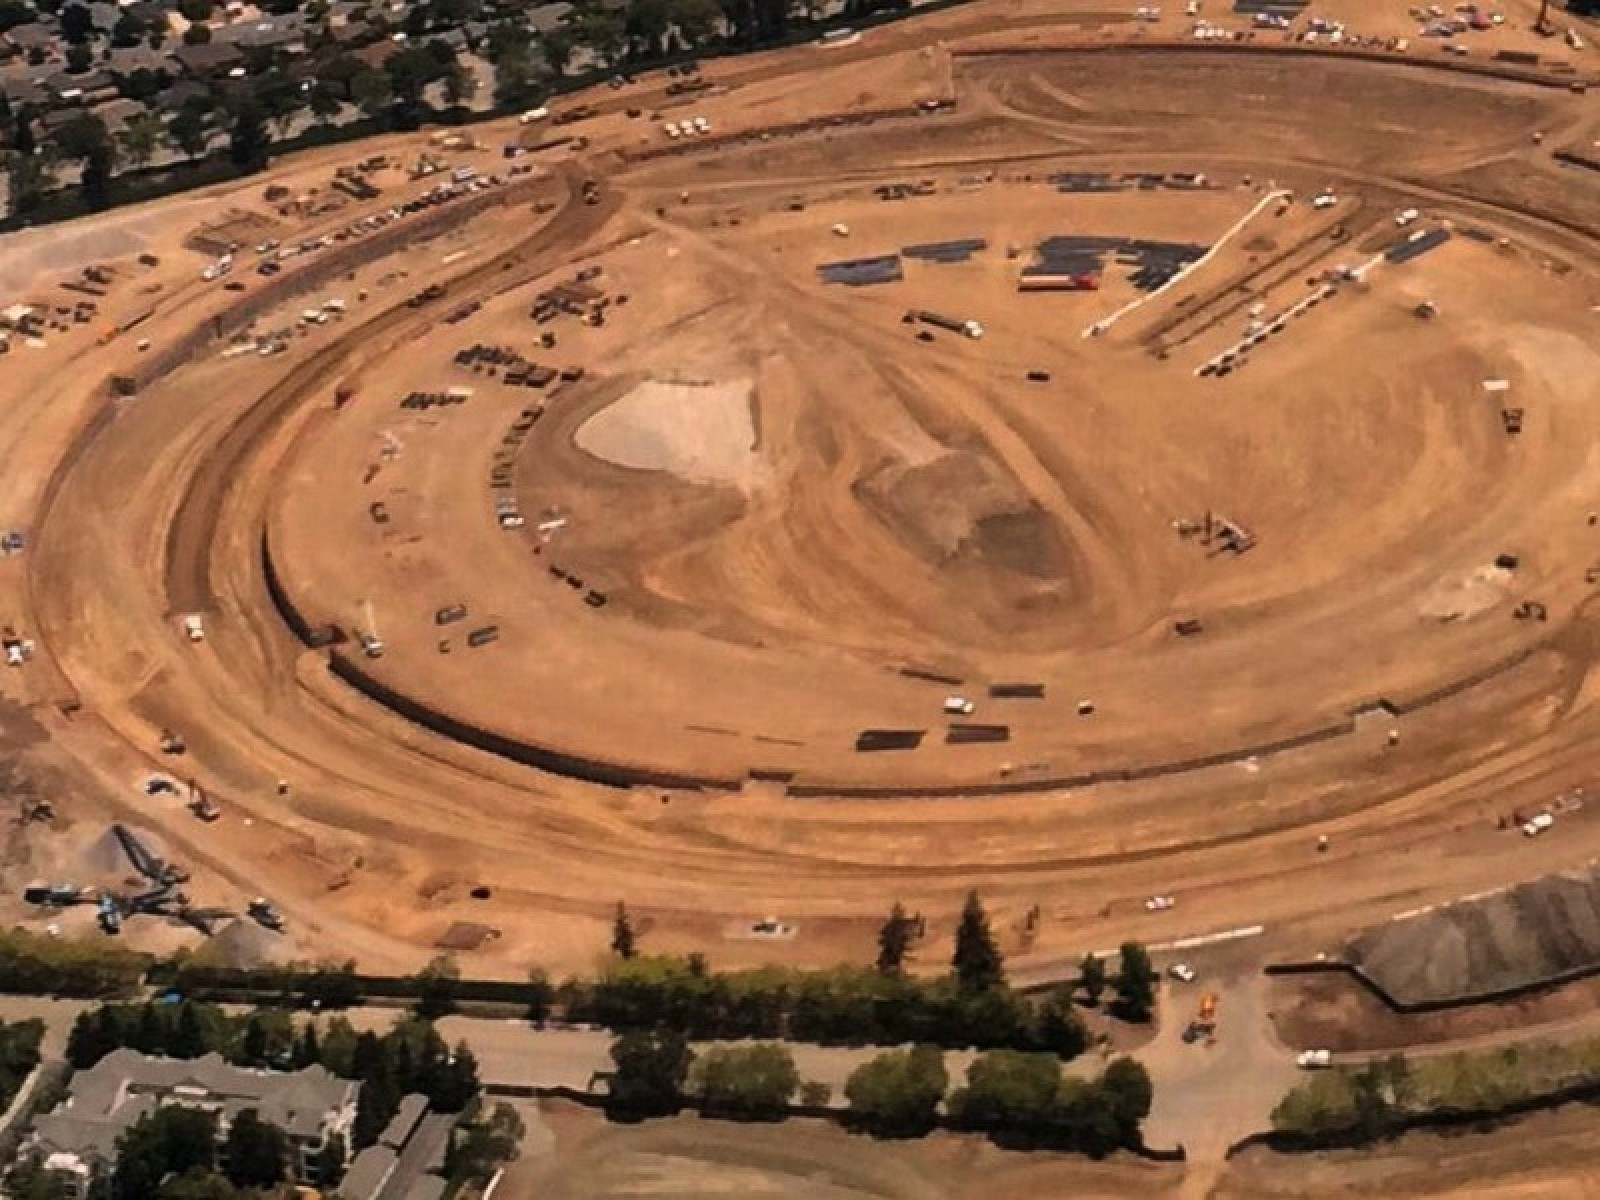 Progress on Apple Campus 2 Continues as Walls Go Up